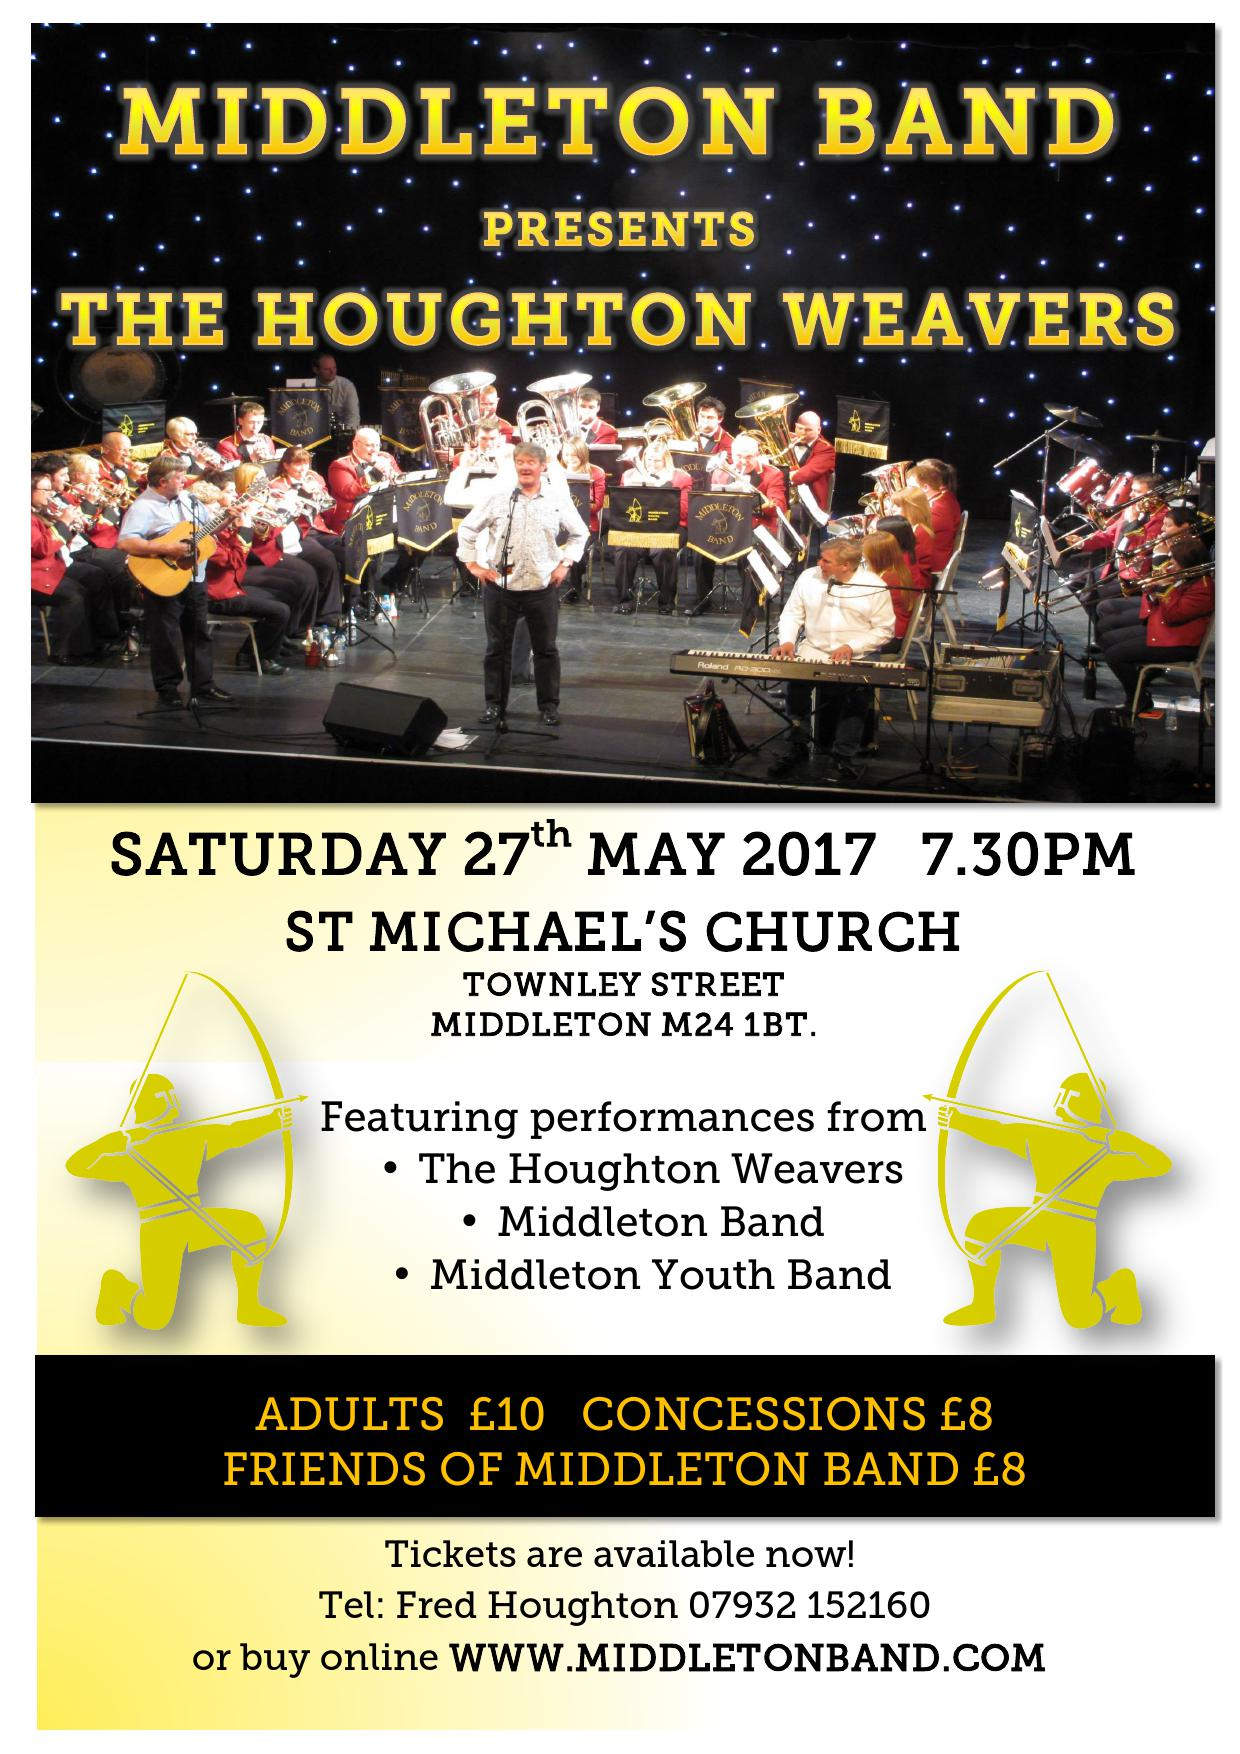 Middleton Band Presents The Houghton Weavers